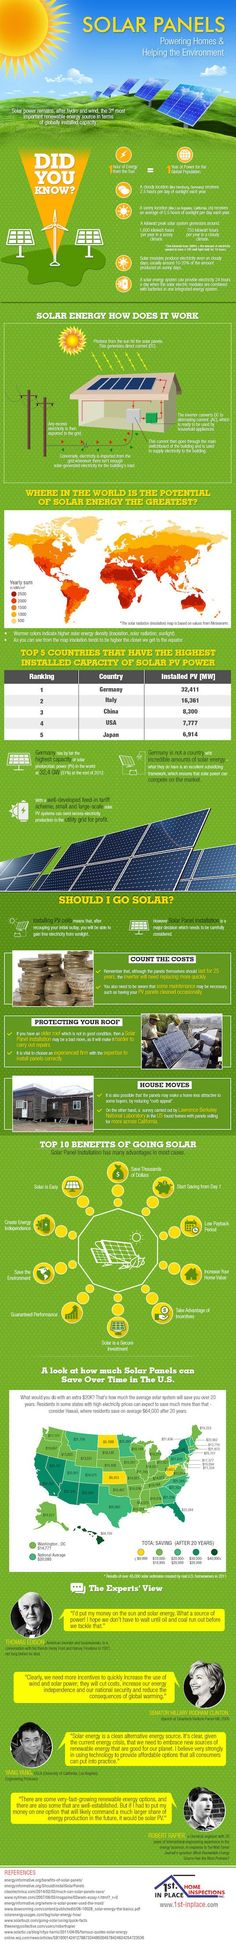 How solar panels work, and the benefits of going solar. #Infographic